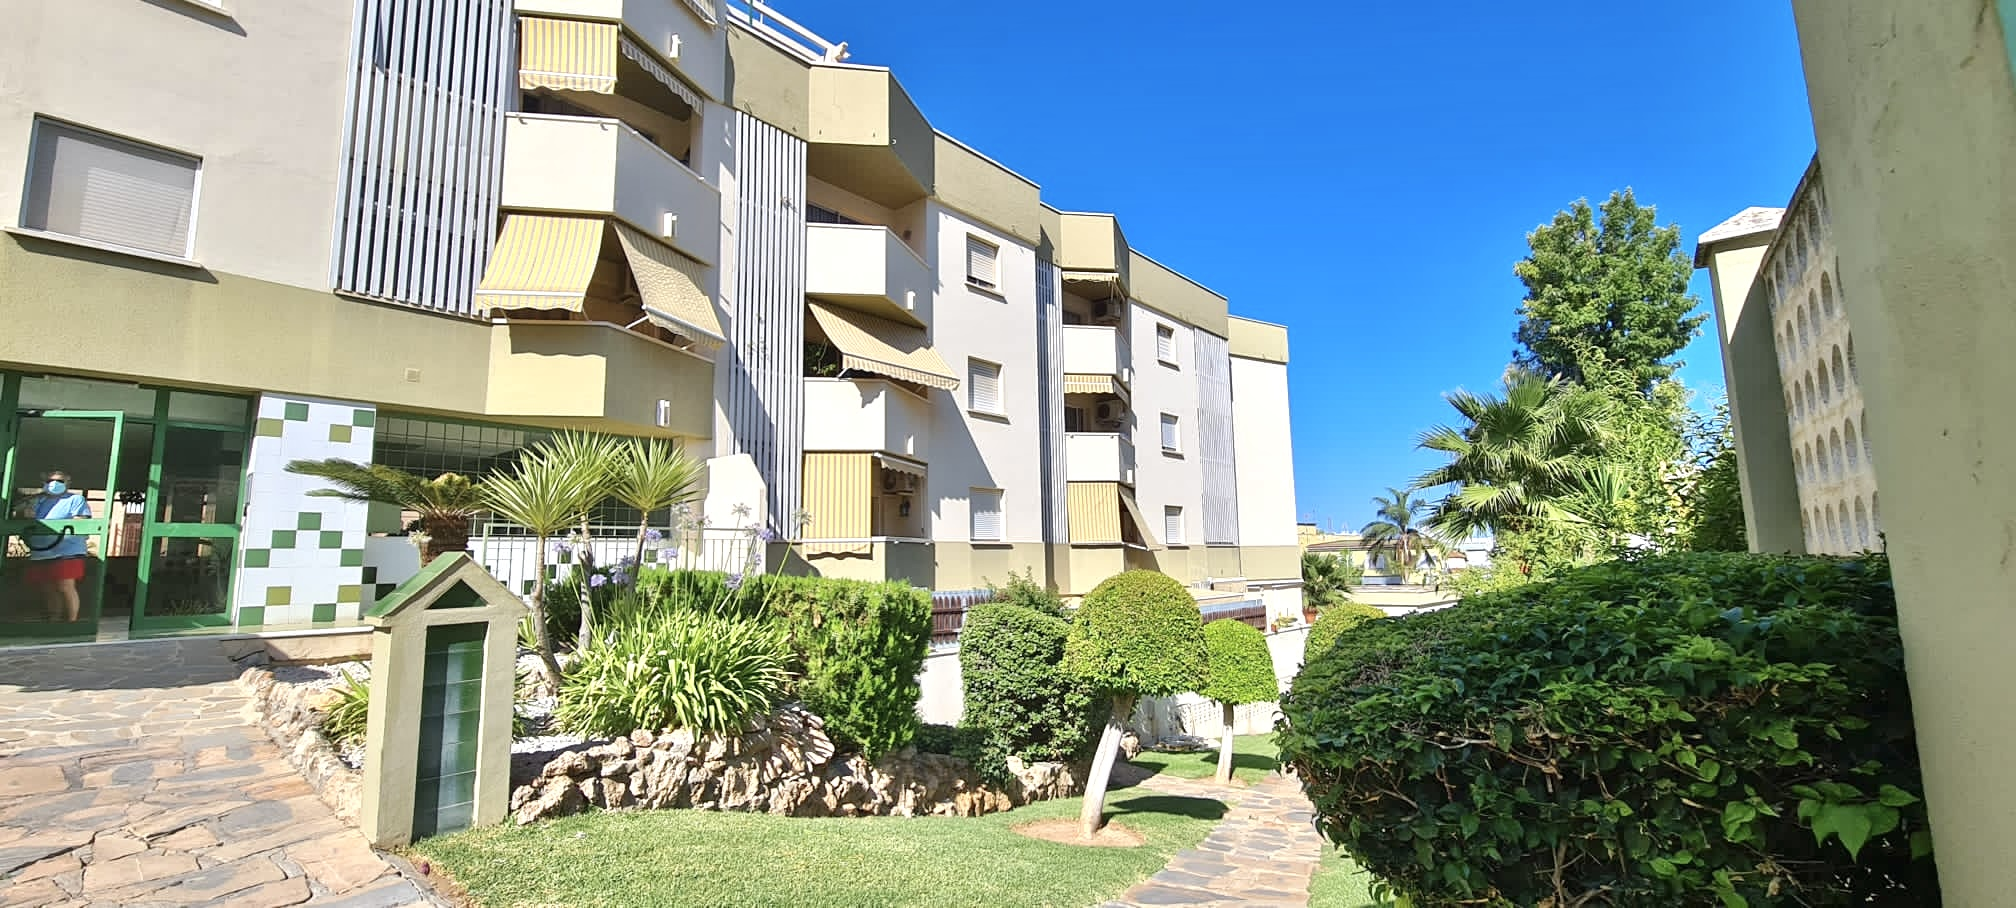 Charming Bright One-Bedroom Flat in the heart of La Carihula